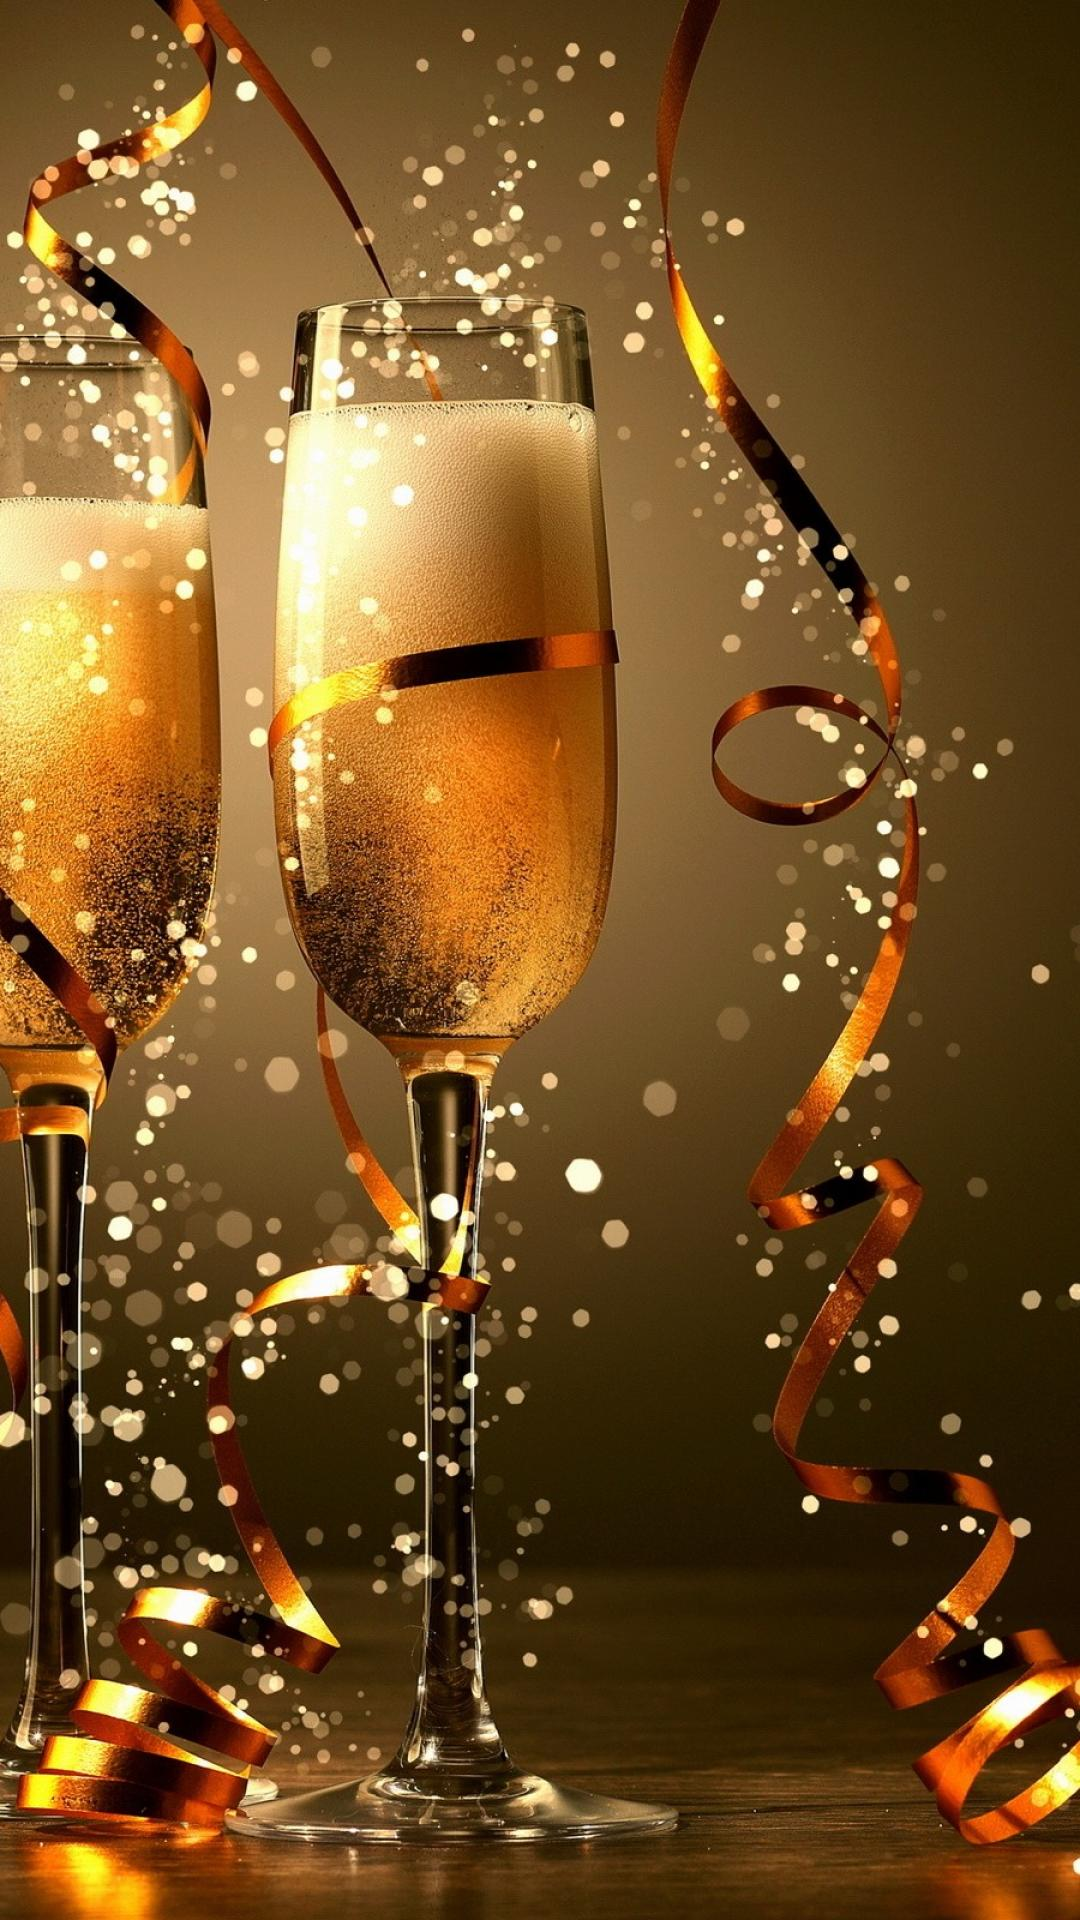 champagne new year holidays 1080x1920